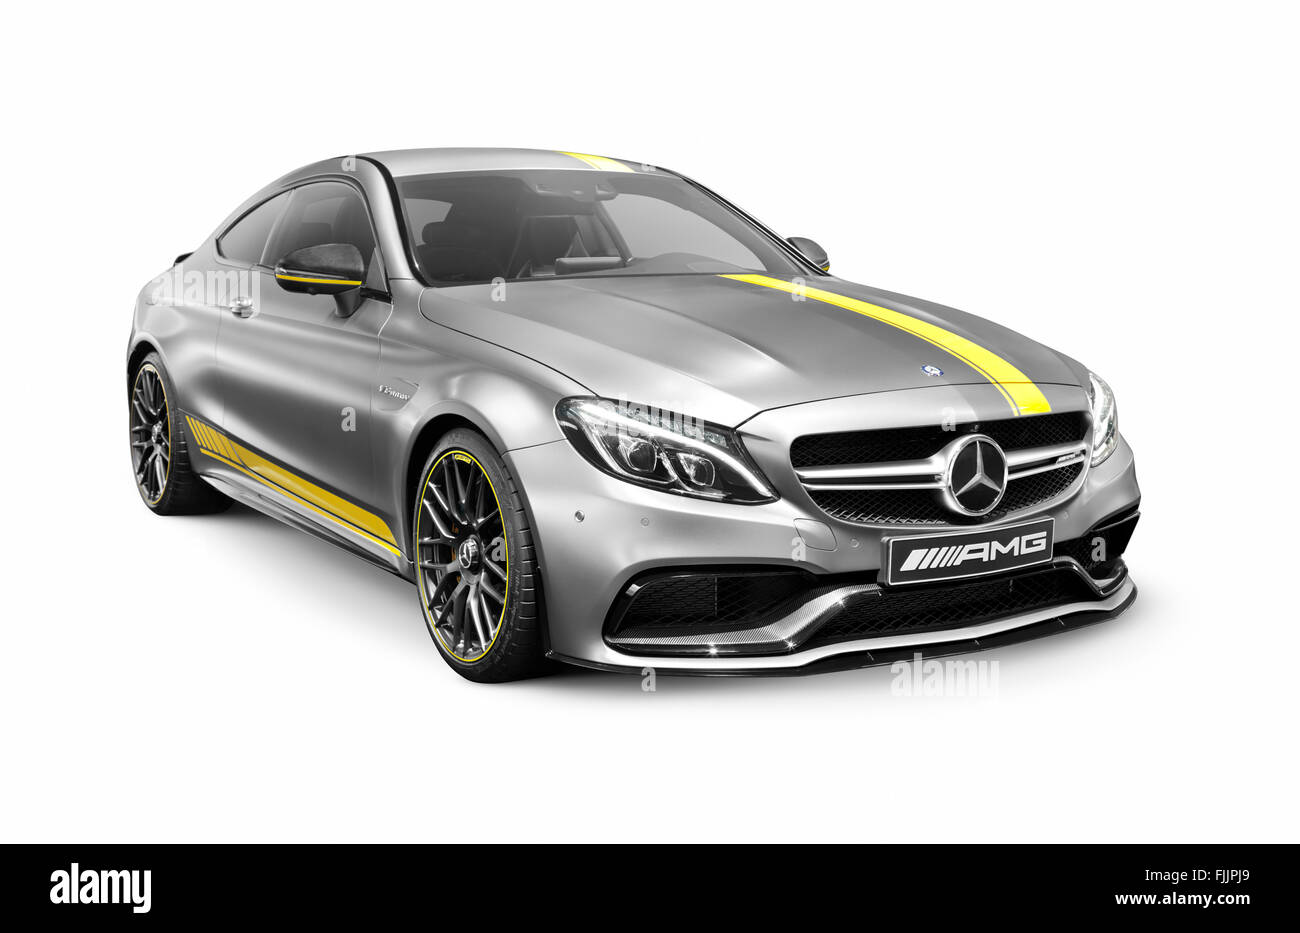 Pics for mercedes benz sport car white for Sports car mercedes benz